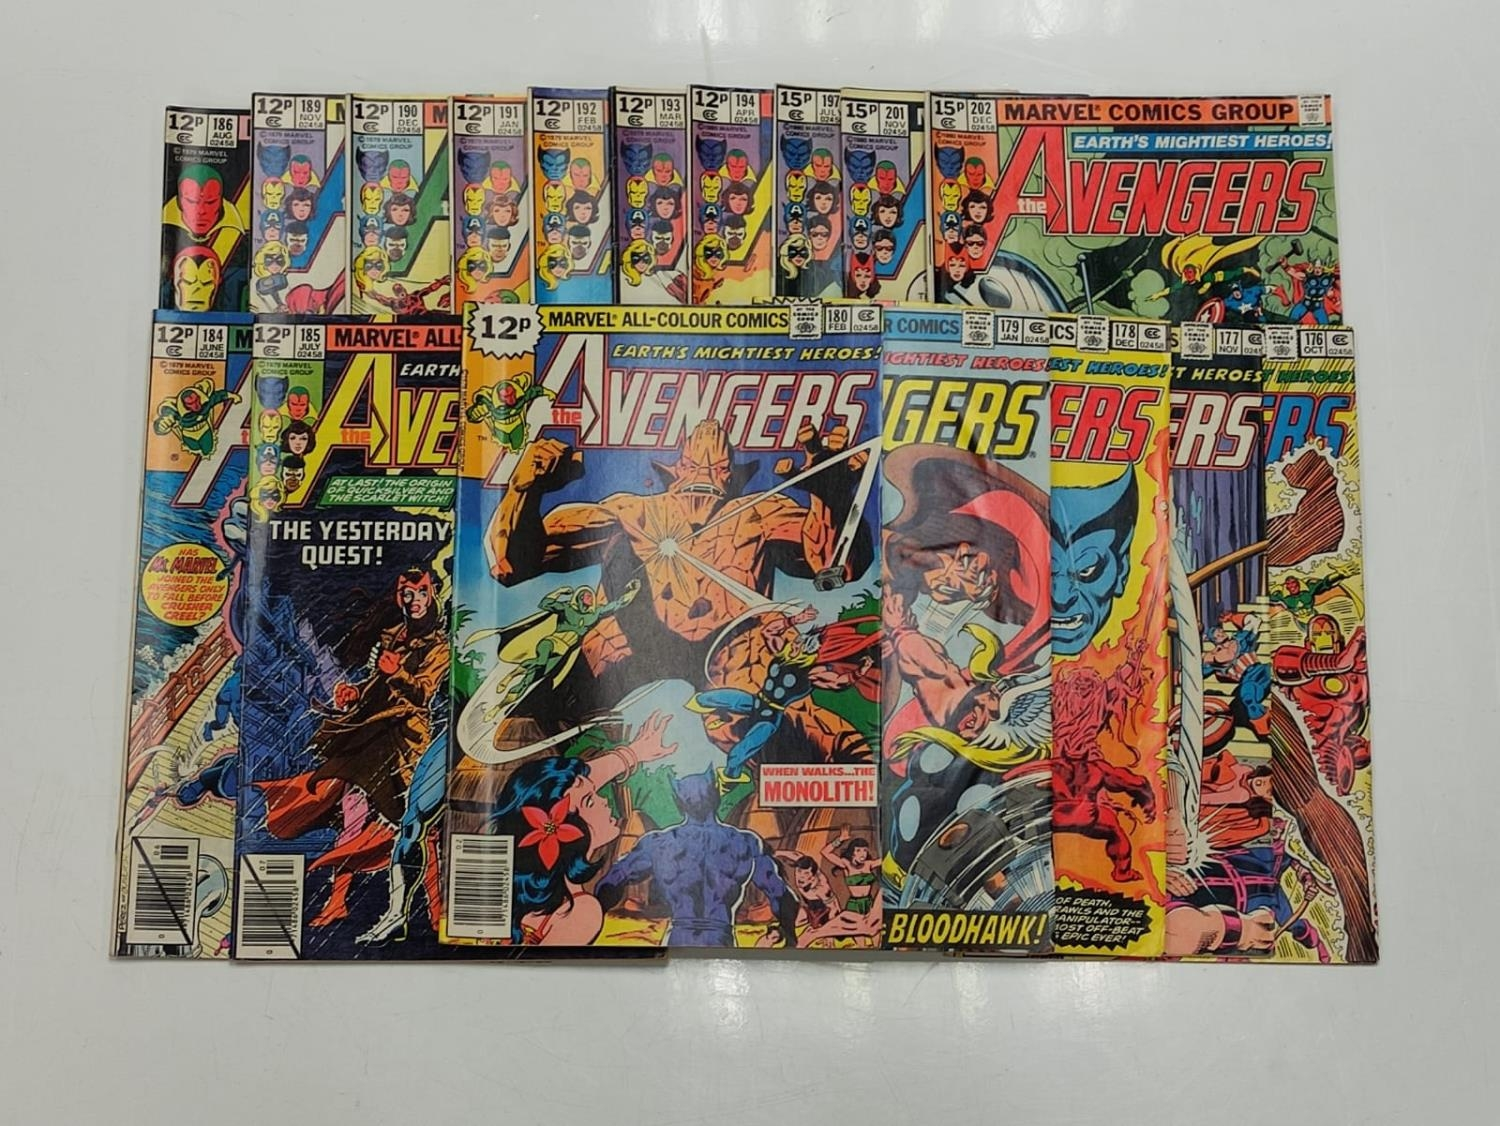 17 editions of Vintage Marvel 'The Avengers' comics in very good condition. - Image 2 of 12